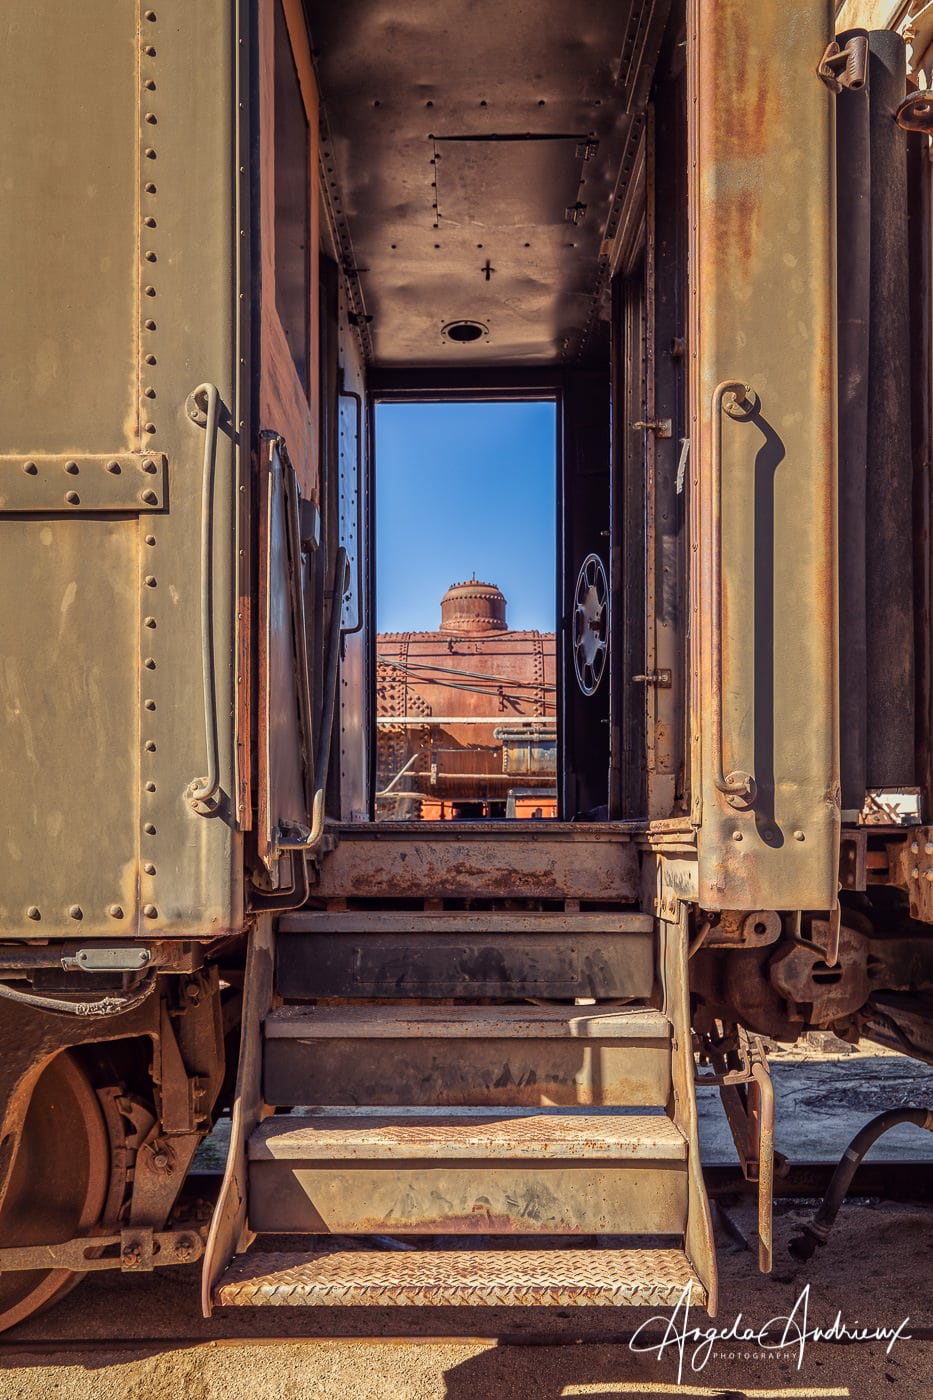 Peering through at the Pacific Southwest Railway Museum in Campo, California